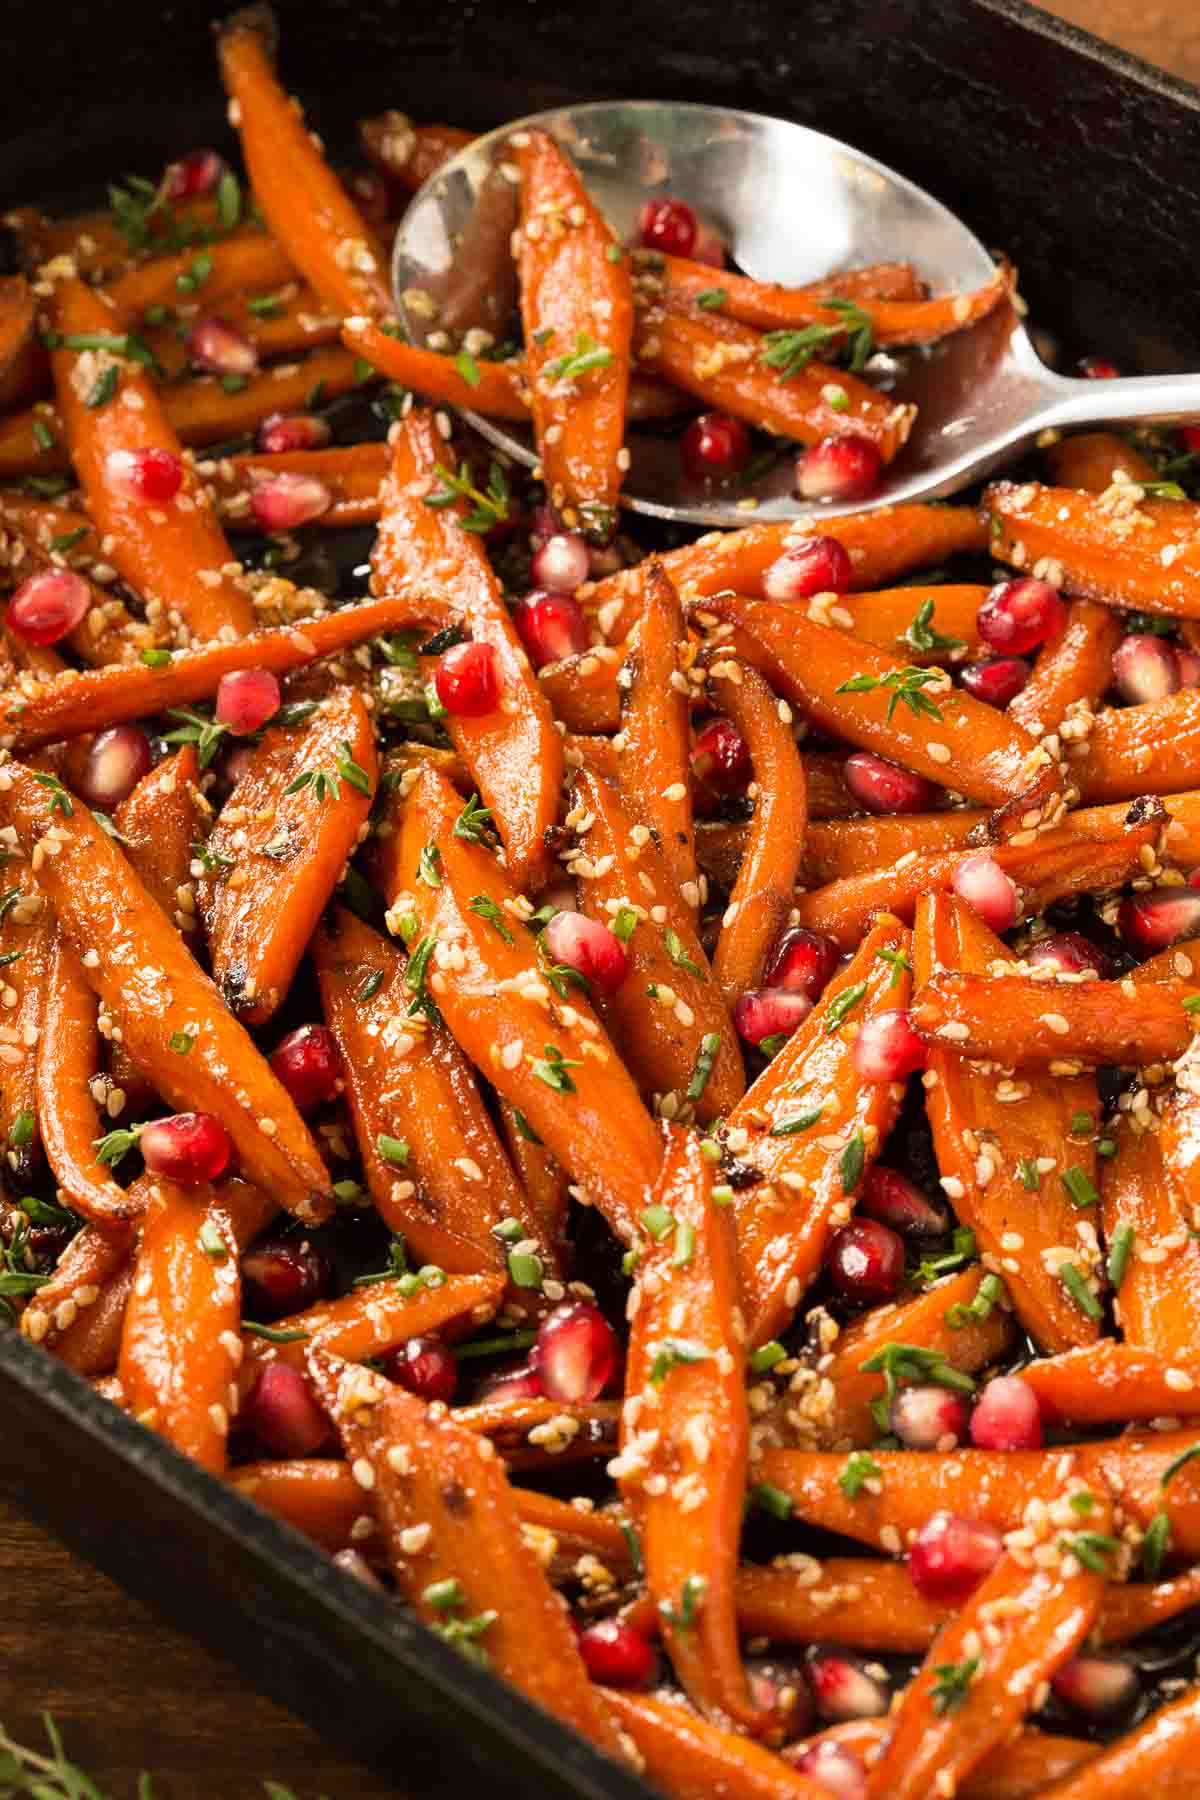 Photo of an oval cast iron pan filled with our Honey Maple Roasted Carrots with a large serving spoon.